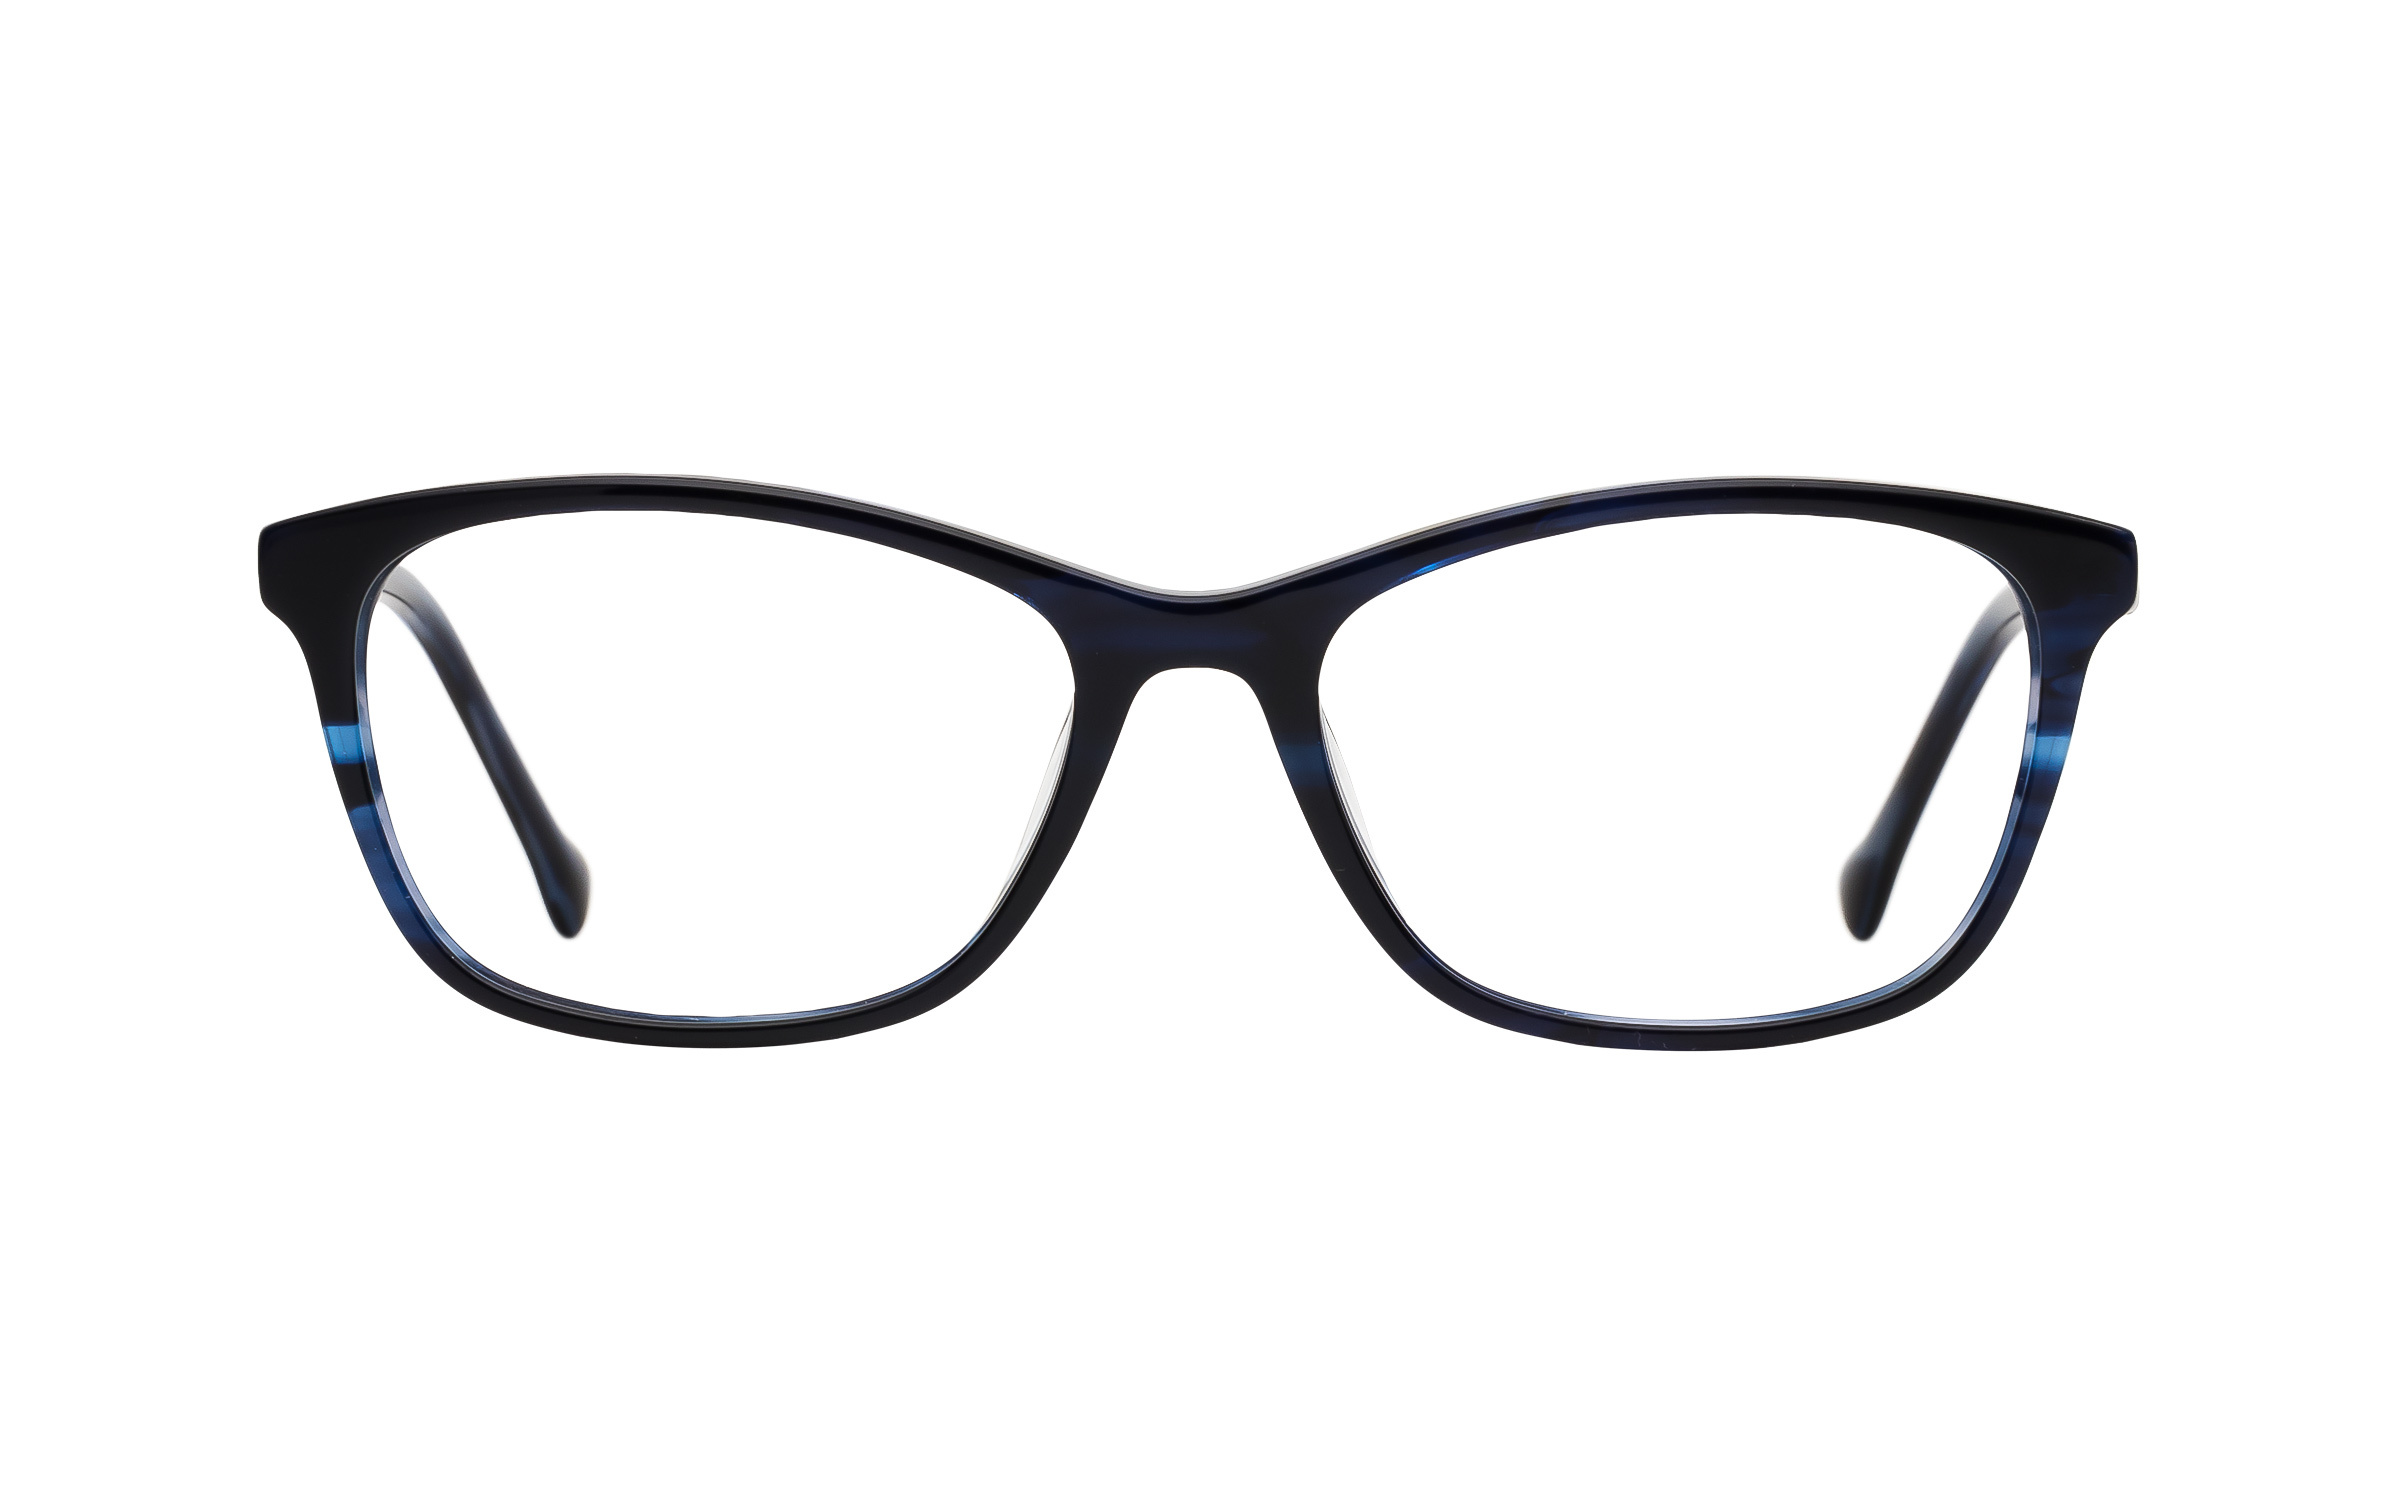 7 For All Mankind 806 Eyeglasses and Frame in Blue | Plastic - Online